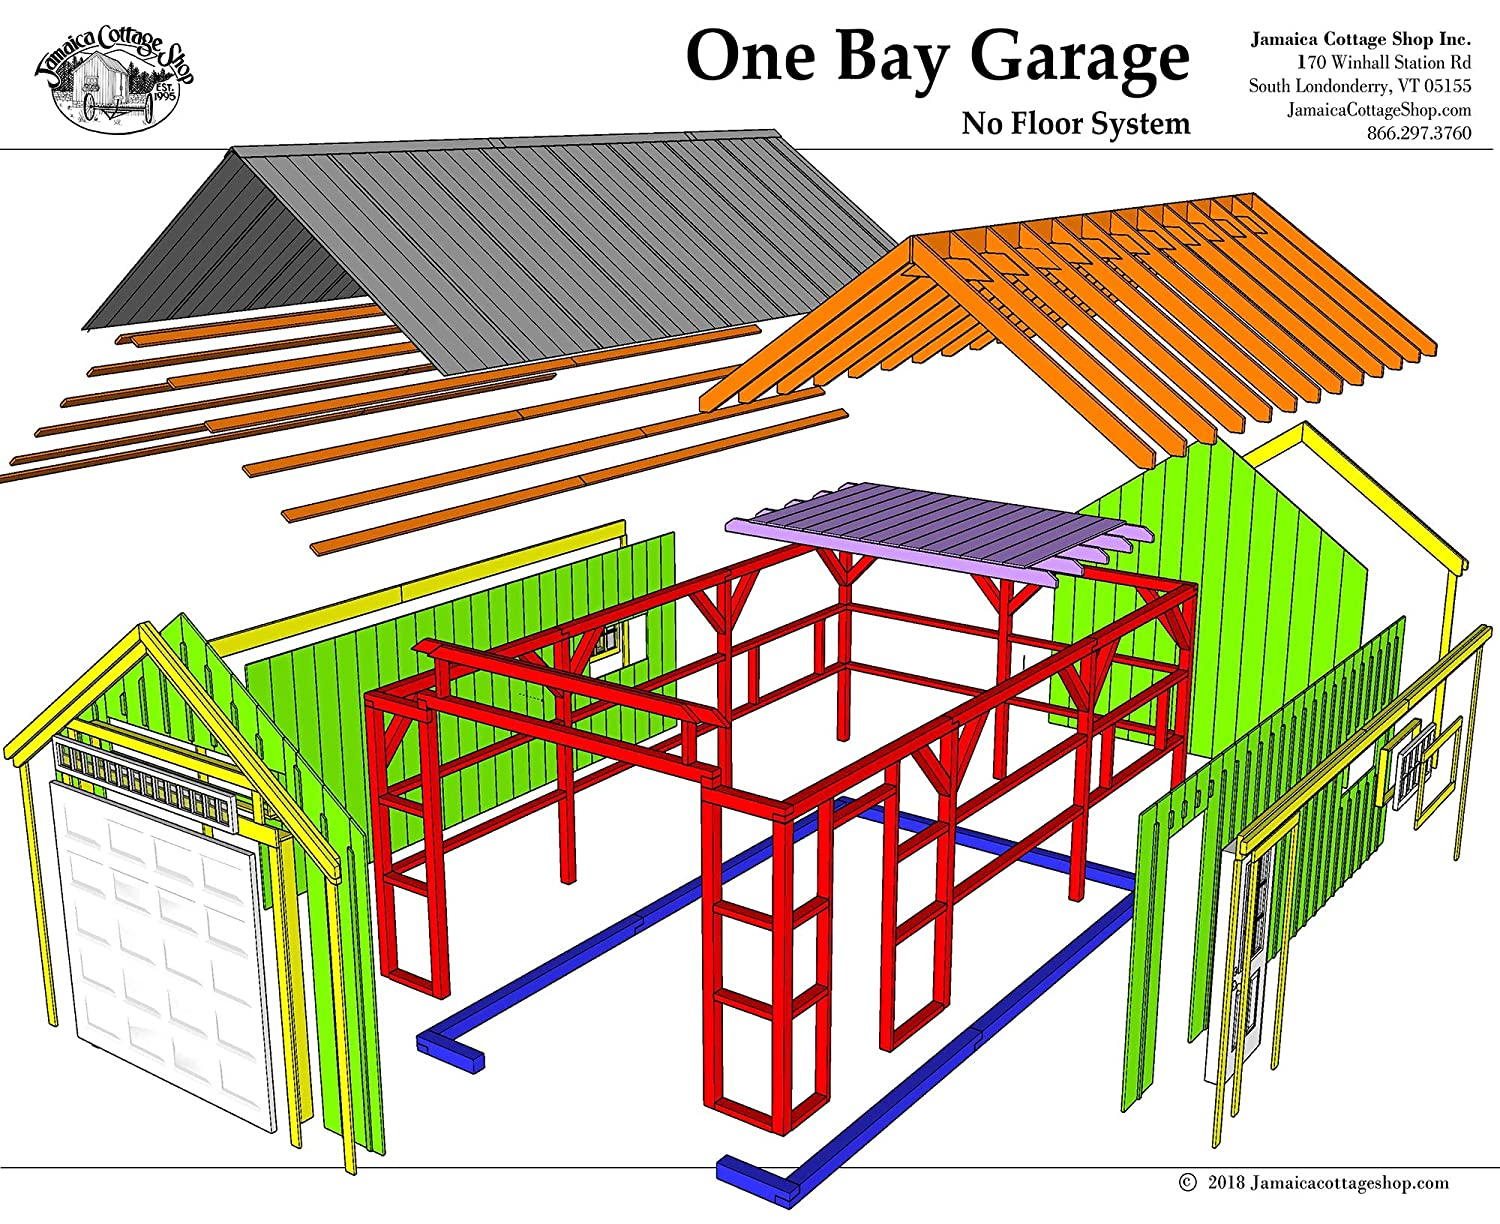 14x20 timber frame post beam one bay garage plans with loft step by step diy building plans amazon com